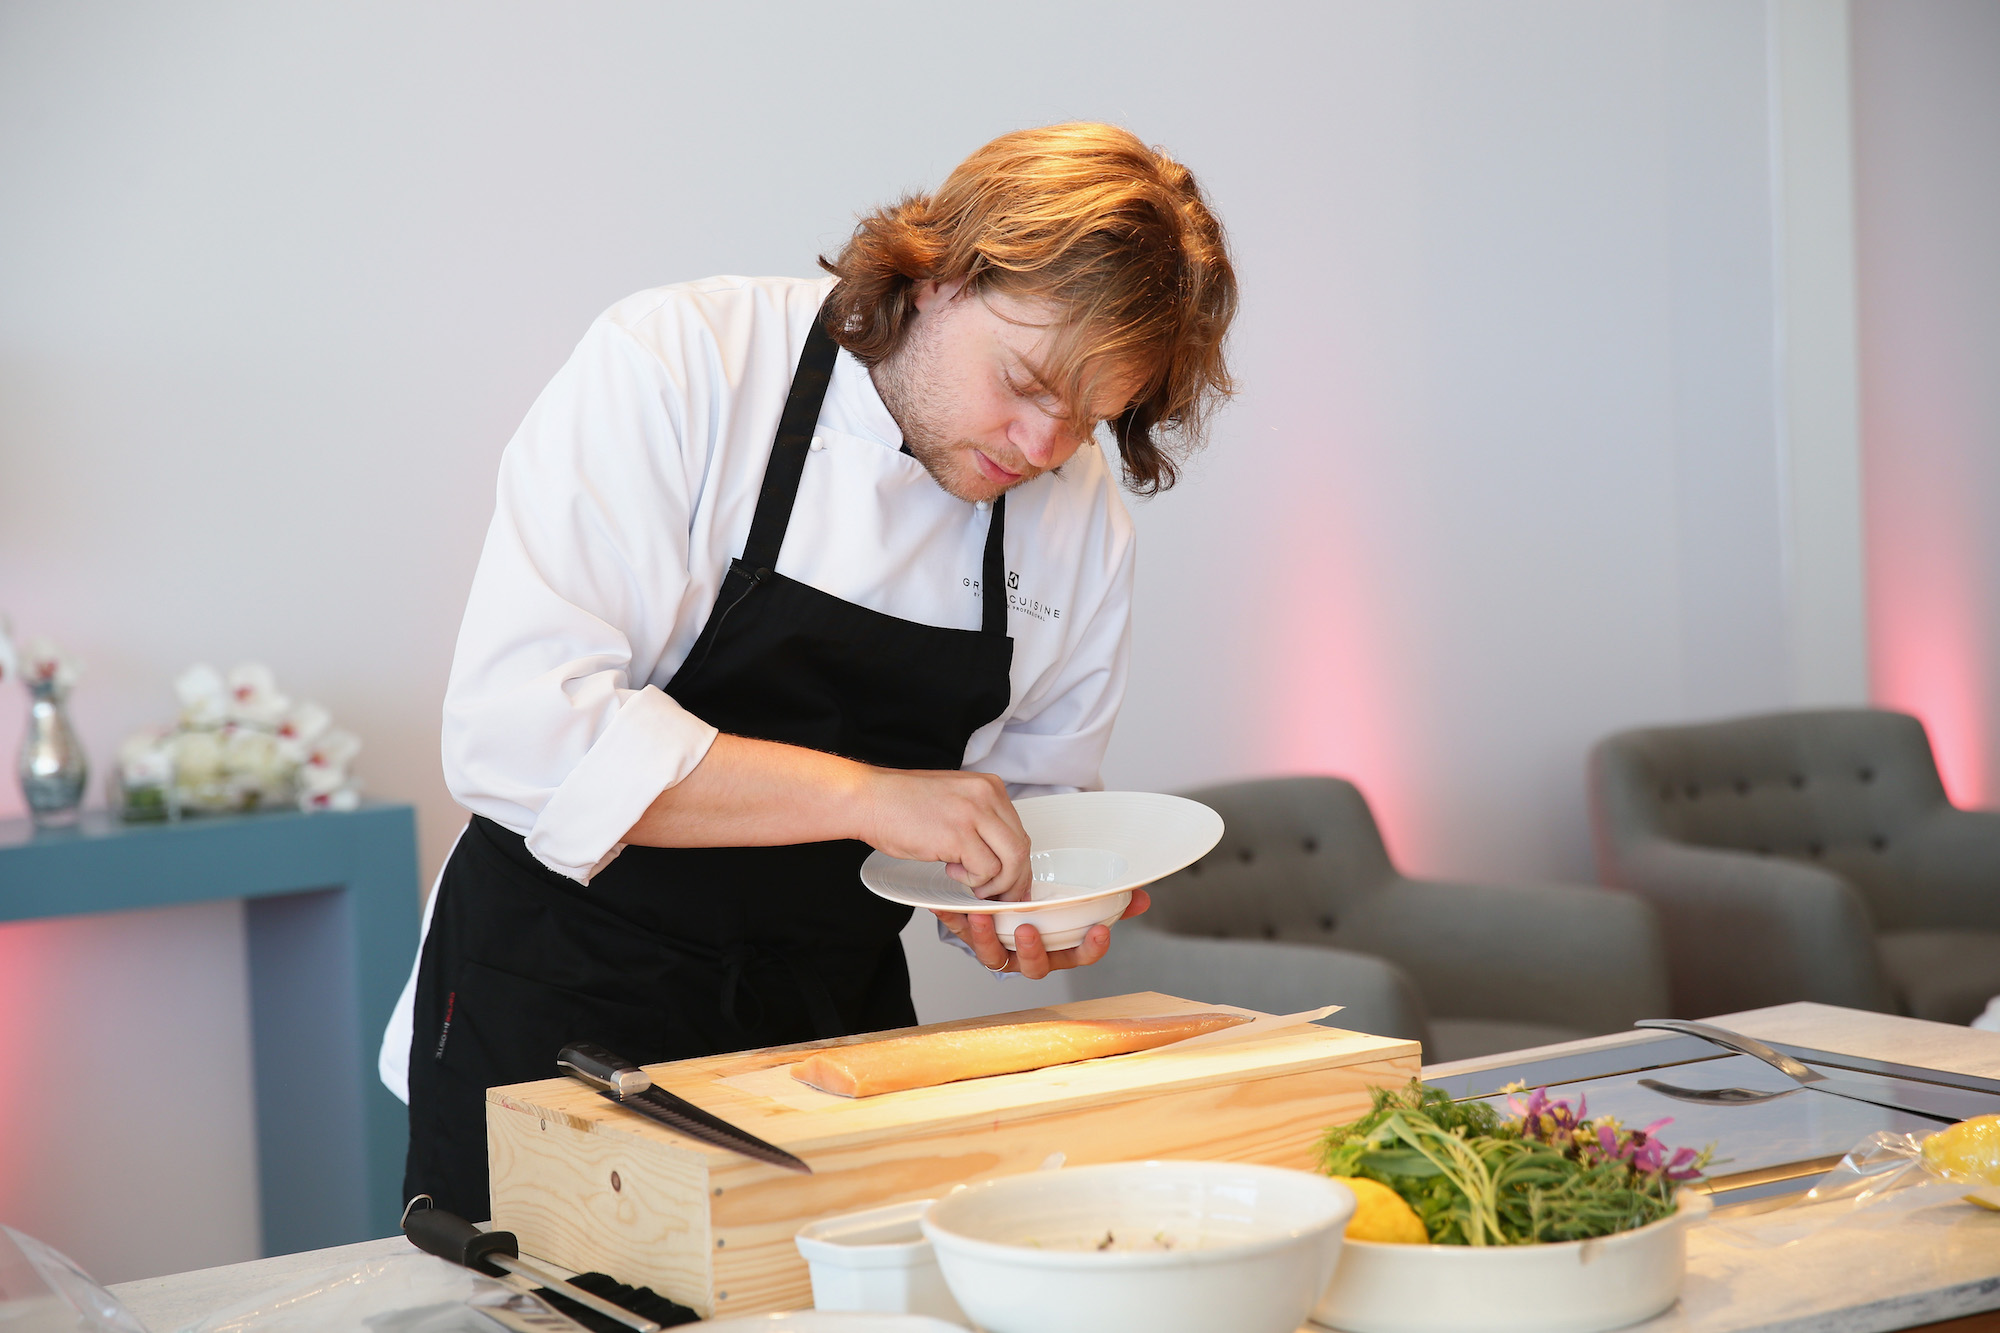 Chef Magnus Nilsson speaks at the Electrolux Grand Cuisine Workshop with Paolo Pettenuzzo and Magnus Nilsson at Electrolux Agora Pavilion on May 17, 2013 in Cannes, France.